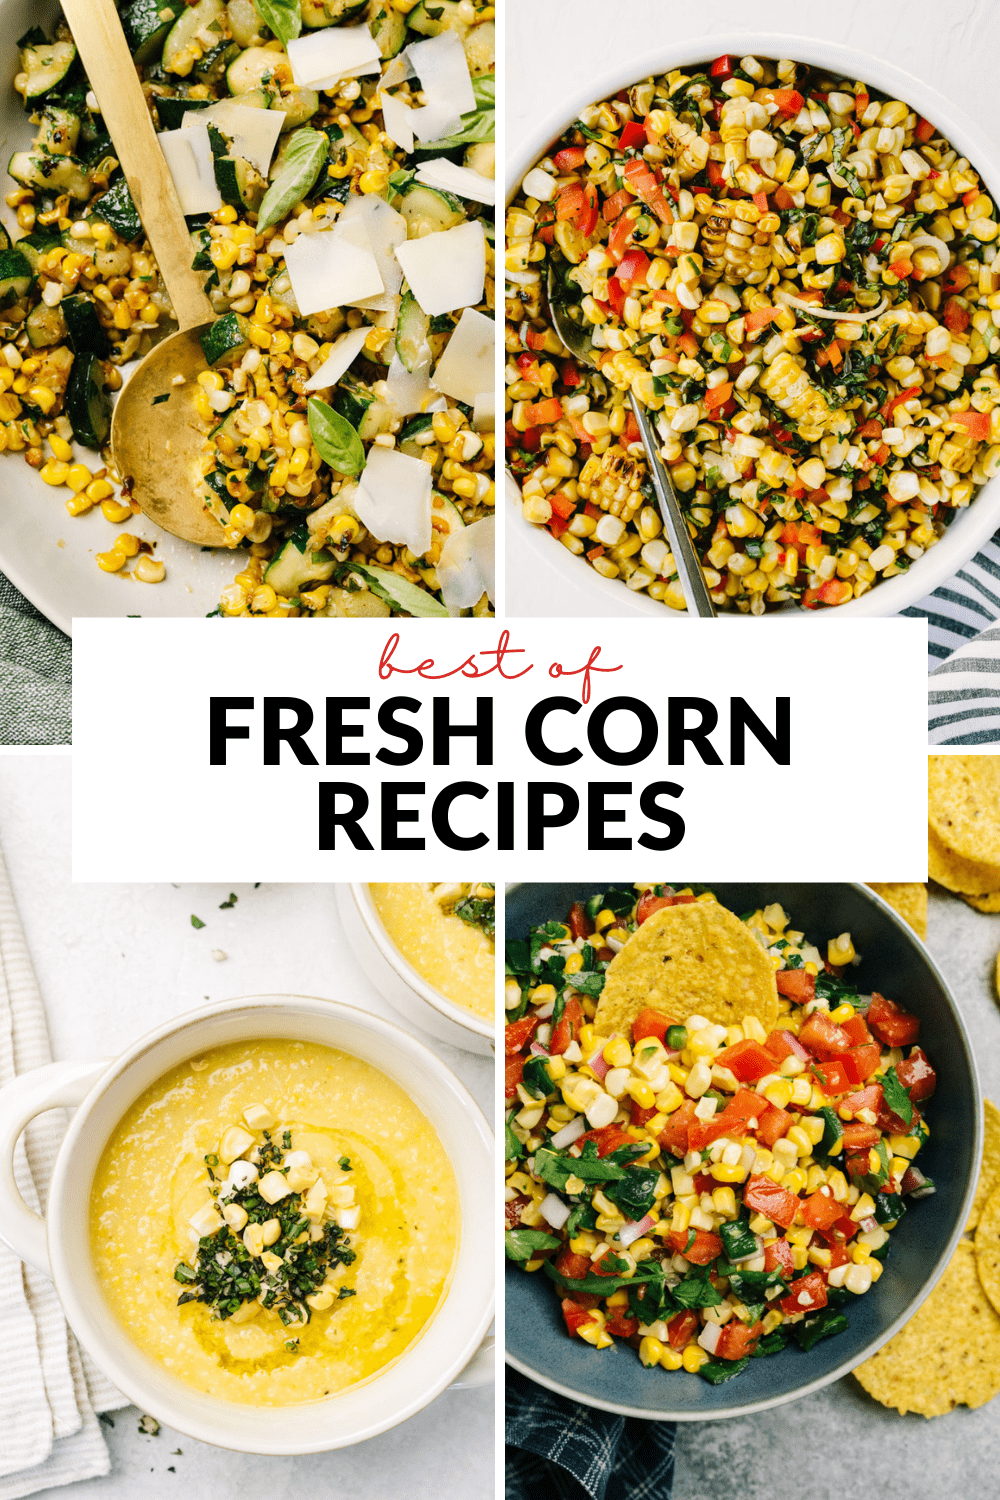 A collage of images showing summer corn recipes.